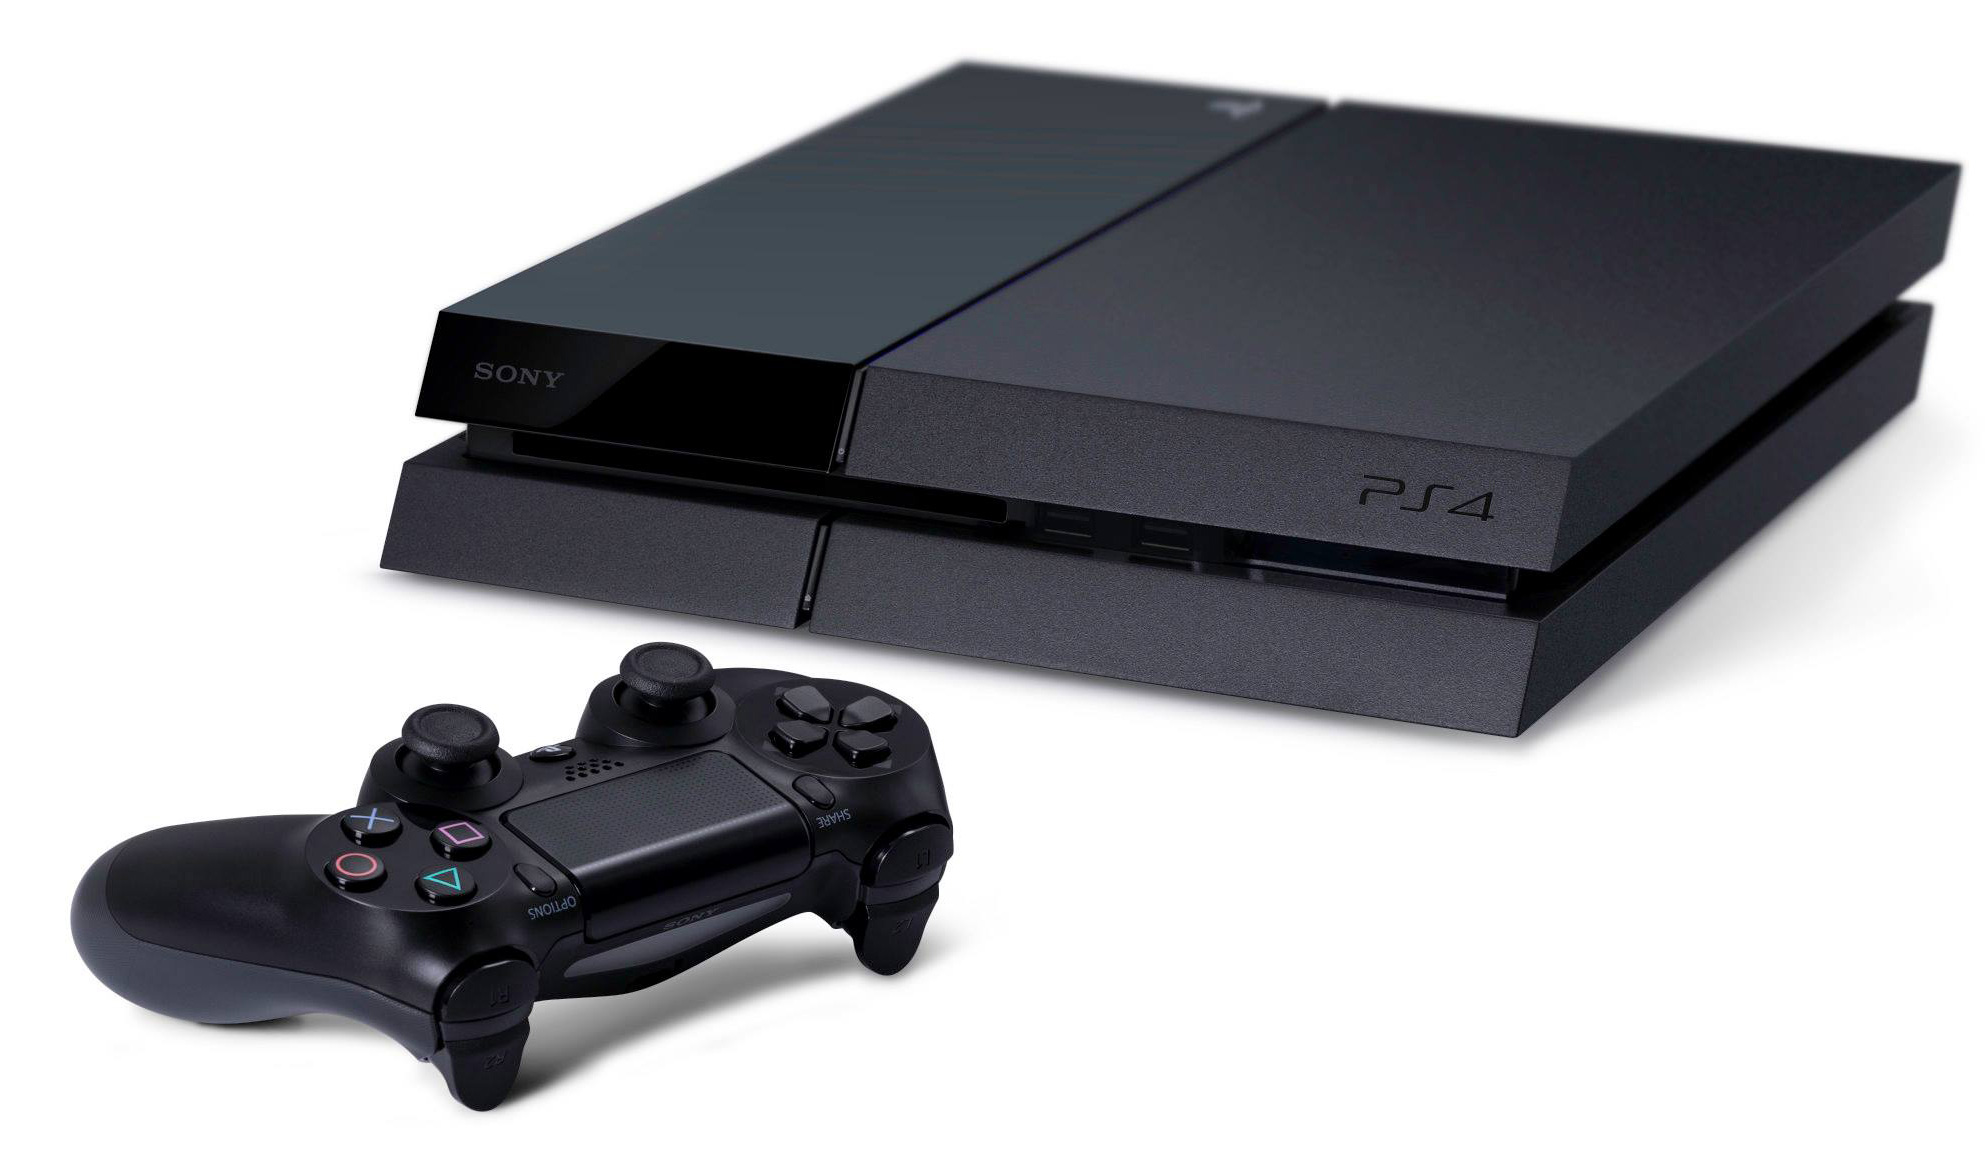 Sony Working To Get Price Tag On $1800 PS4 Lowered In Brazil